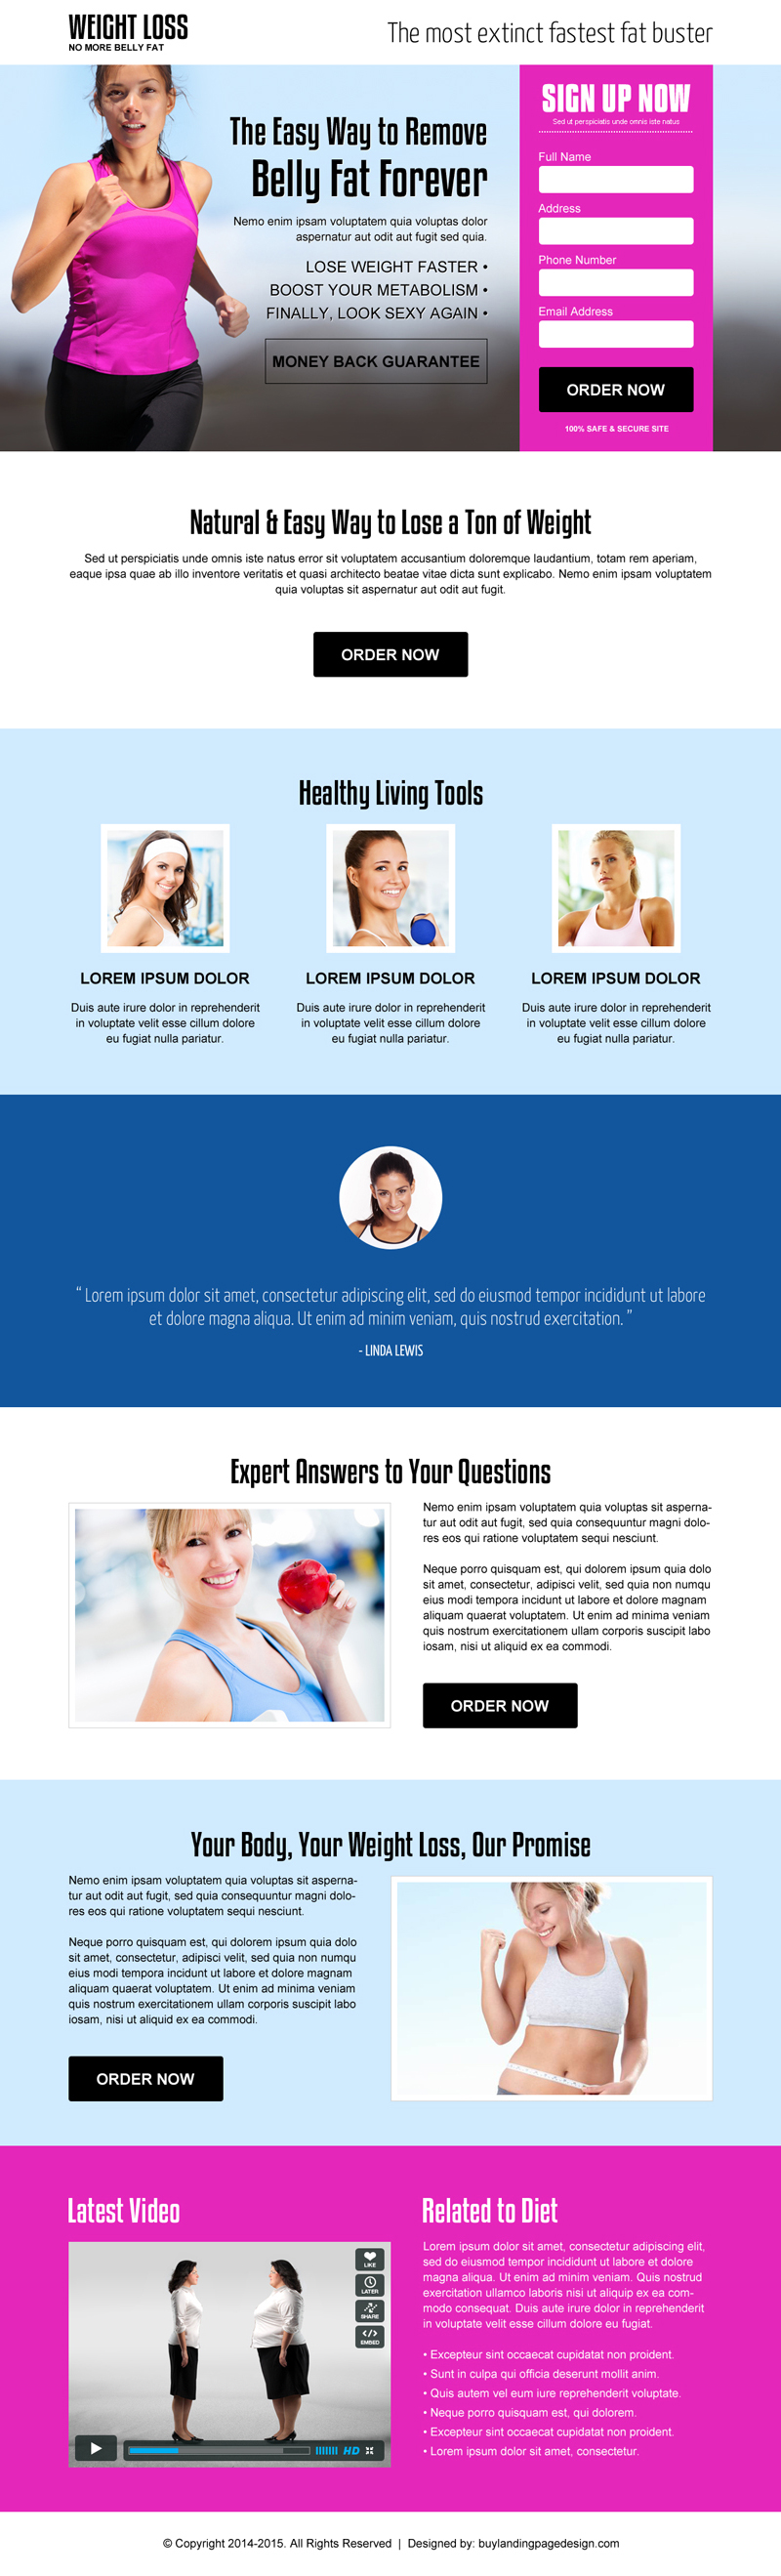 best-weight-loss-product-for-women-lead-capture-responsive-landing-page-design-010_1